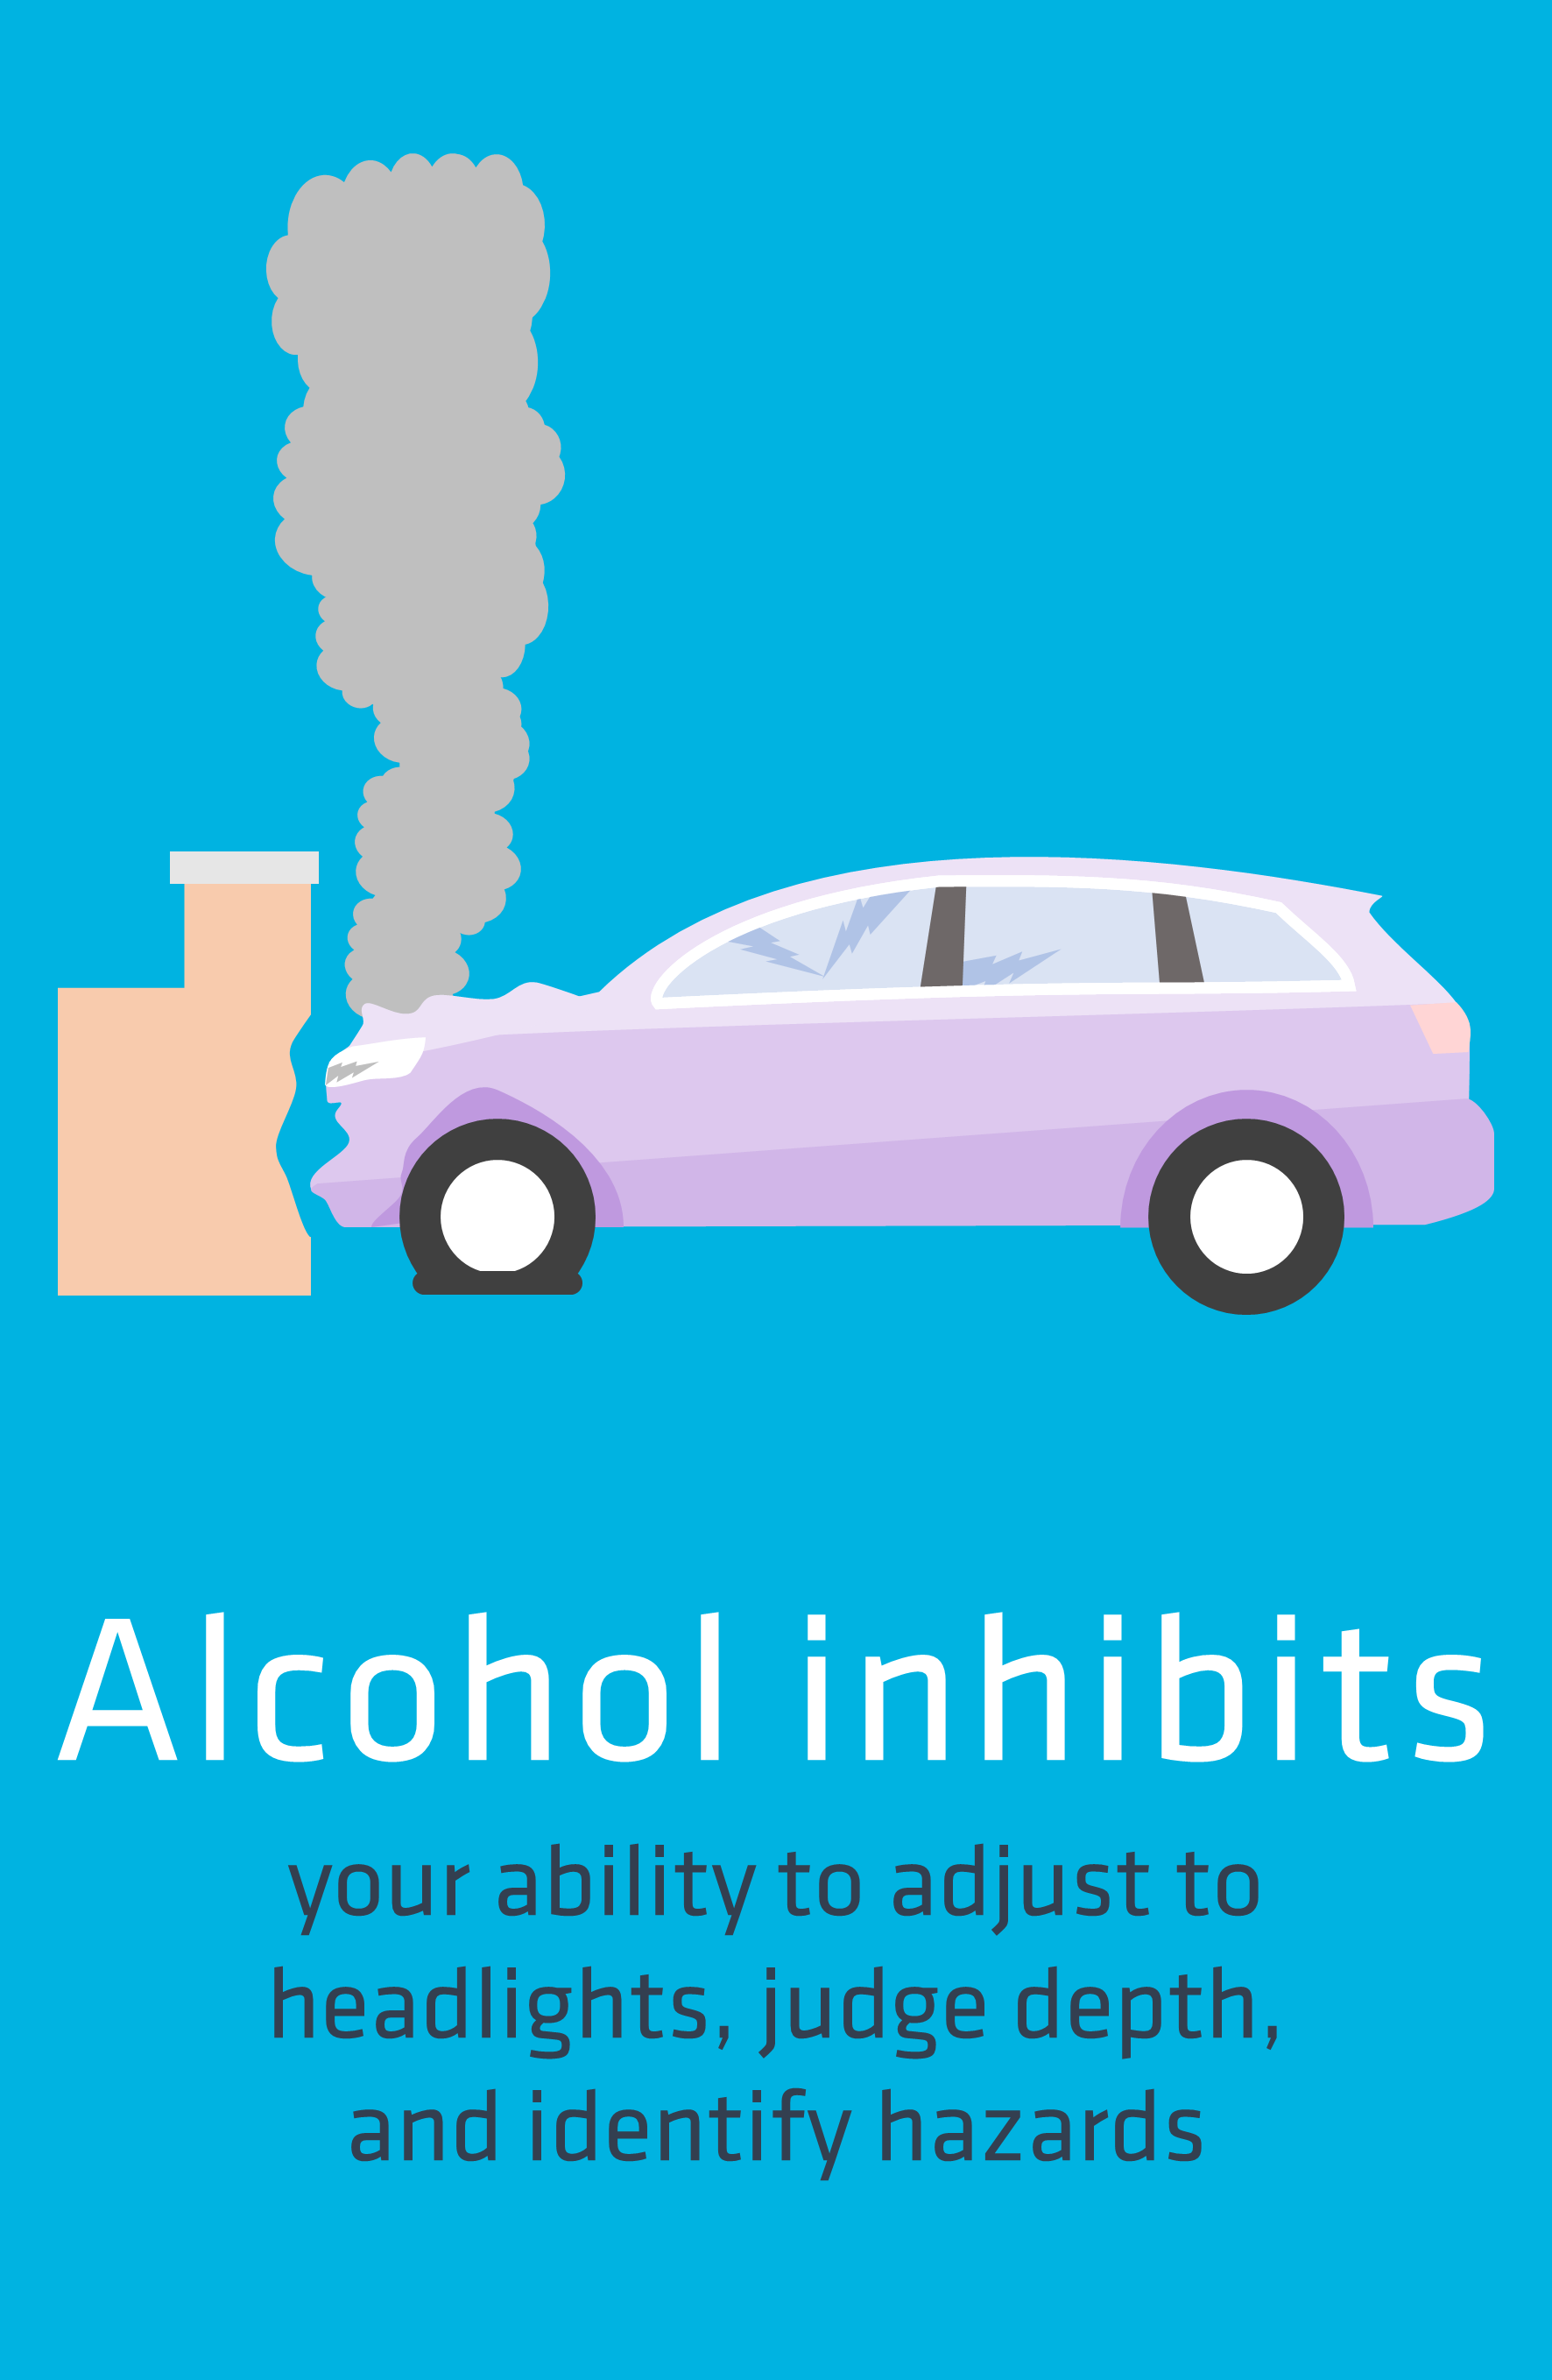 Alcohol inhibits